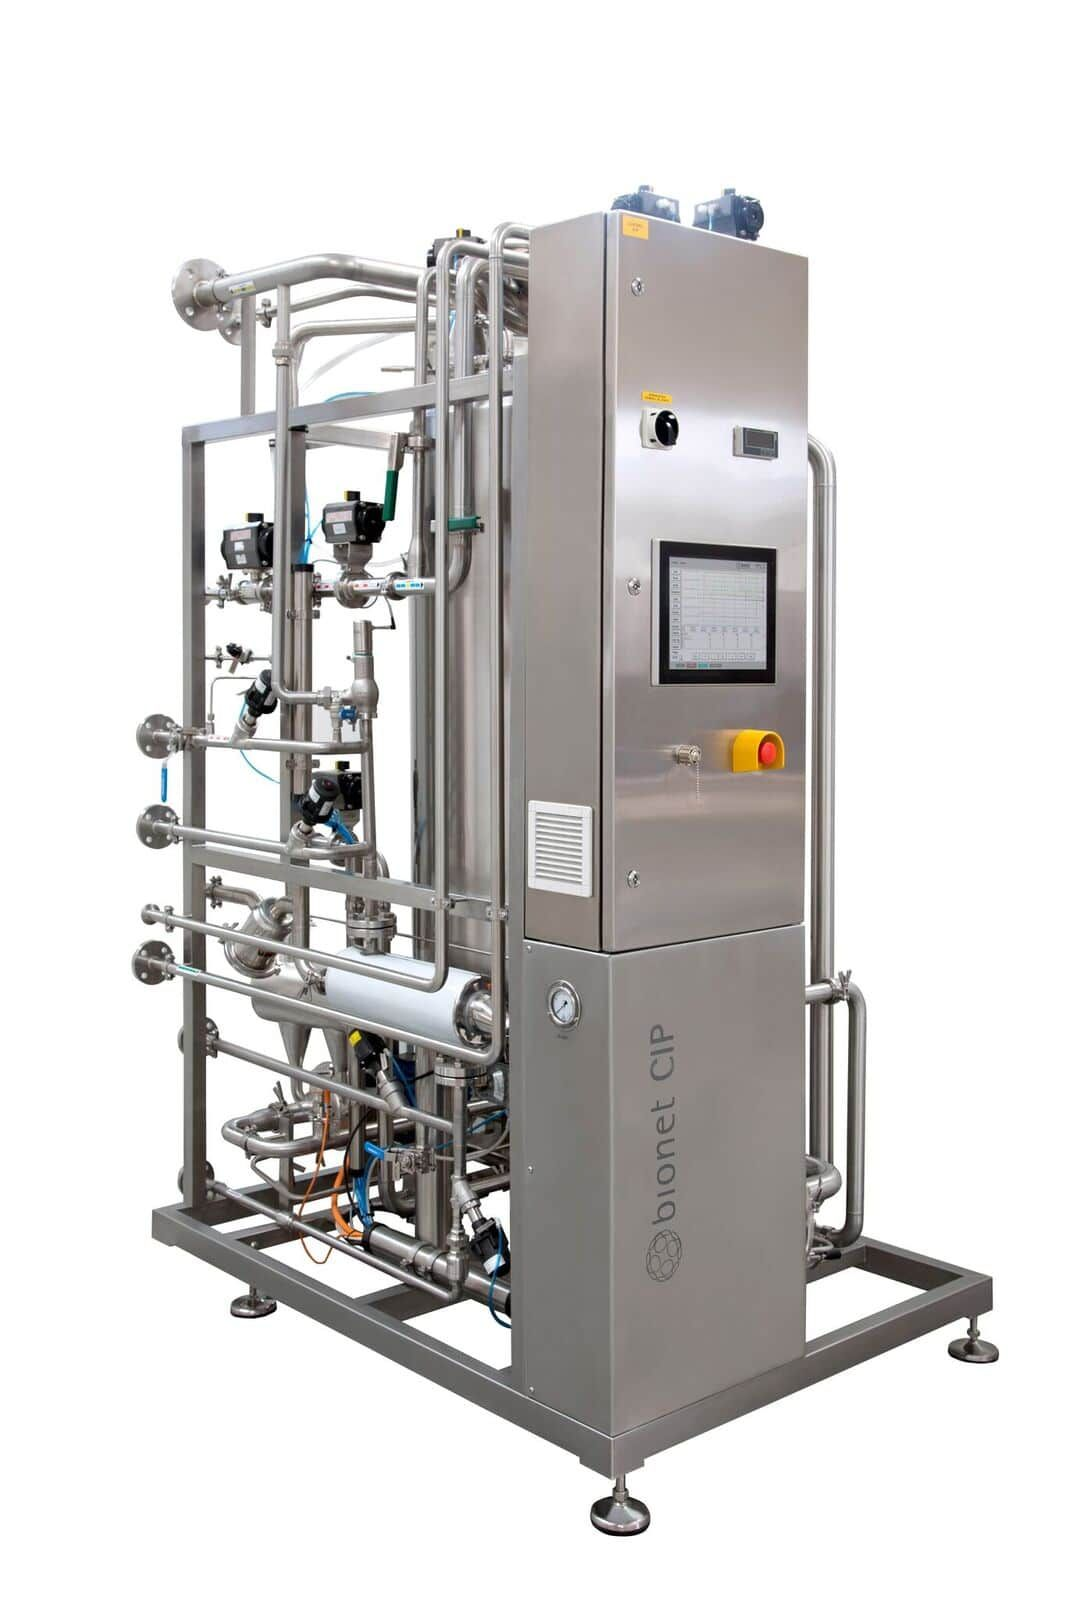 CIP for Fementation or BioReactors by Bionet (Spain)